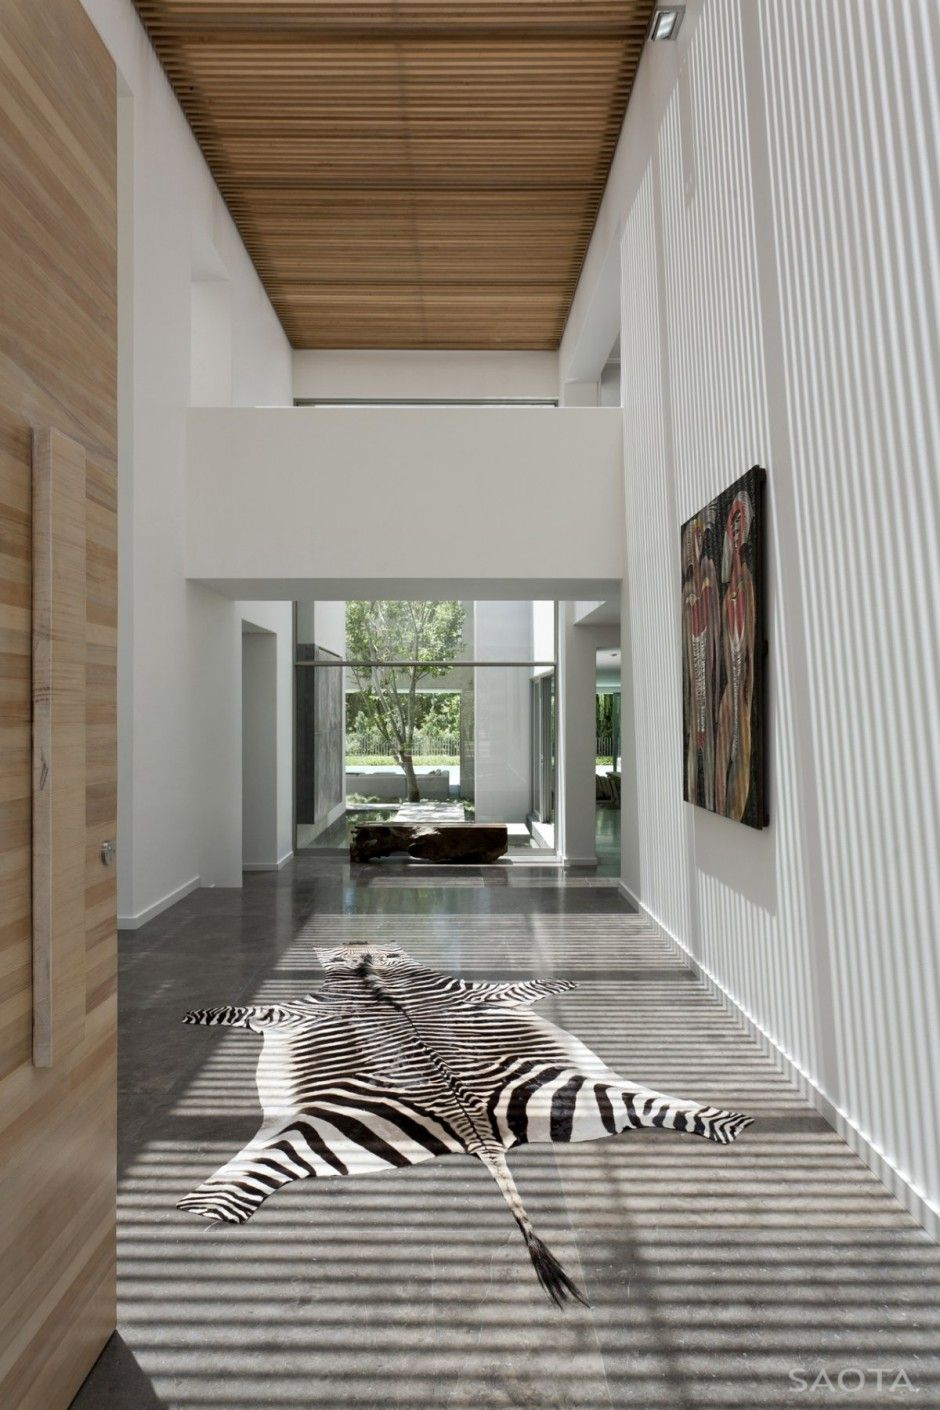 Silverhurst residence cape town south africa by saota and antoni associates also best interiors images on pinterest mirrors home decor rh